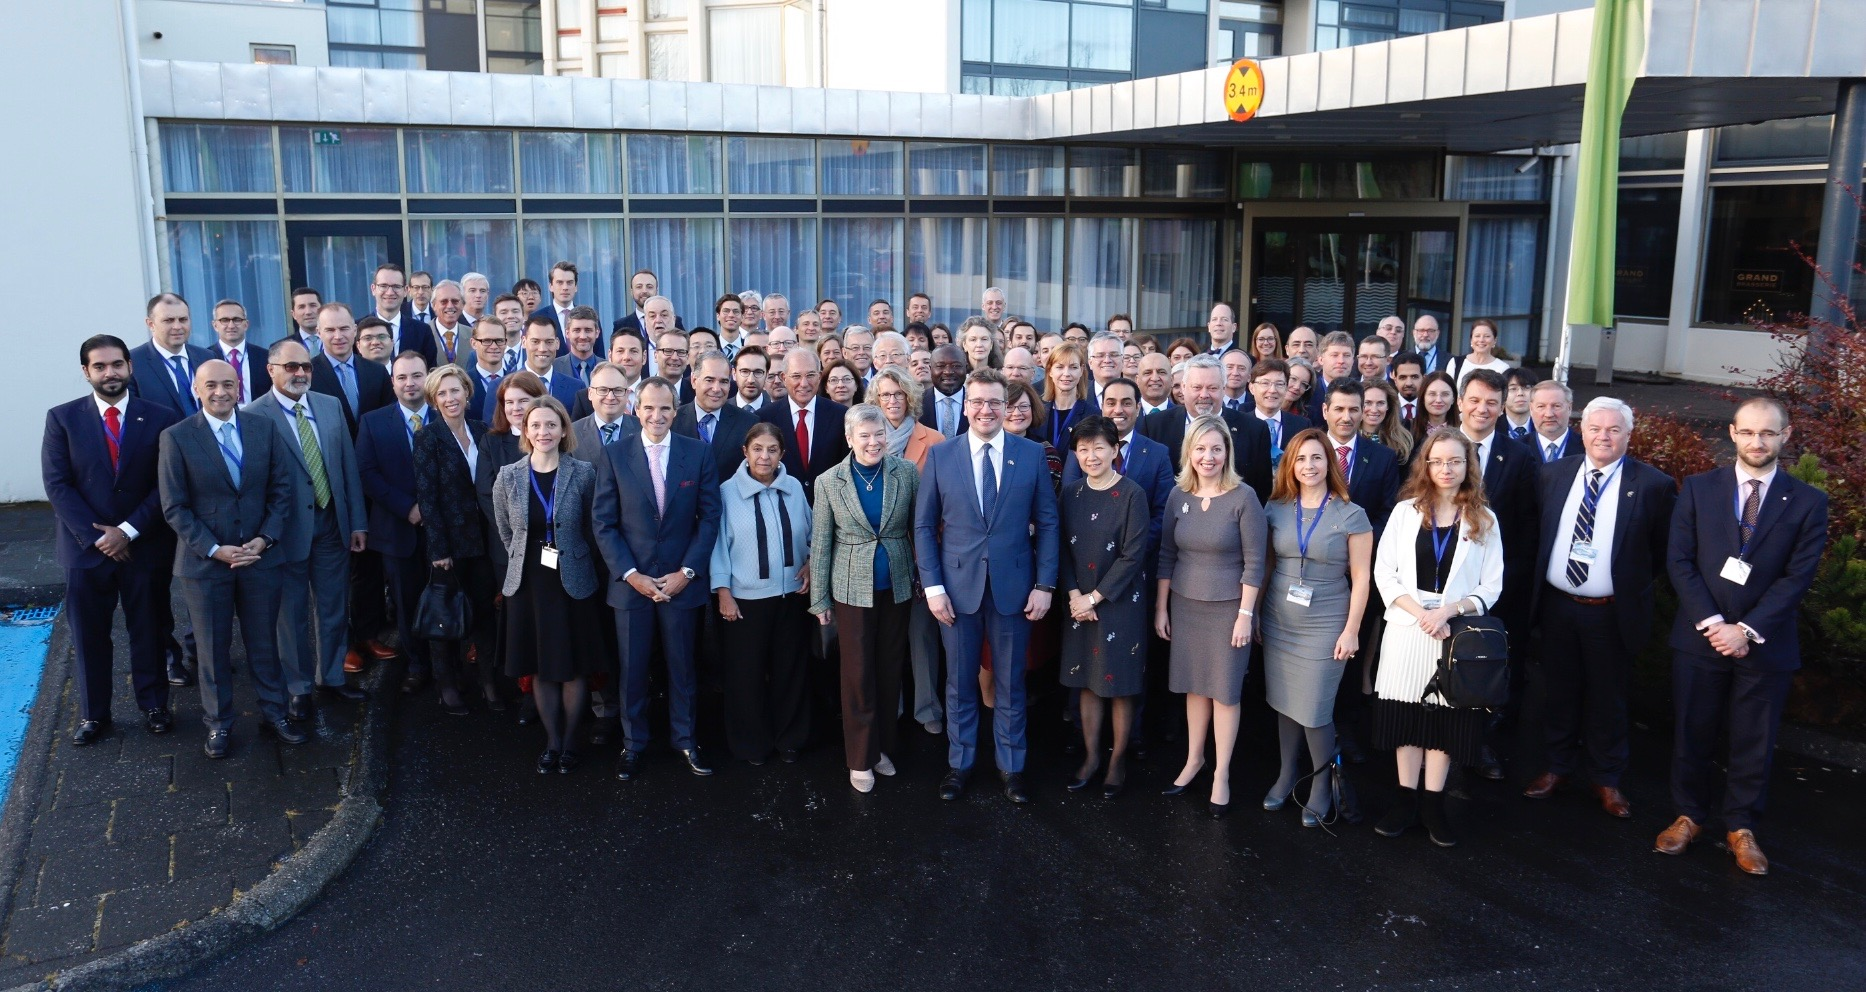 Iceland hosts annual NATO conference - mynd